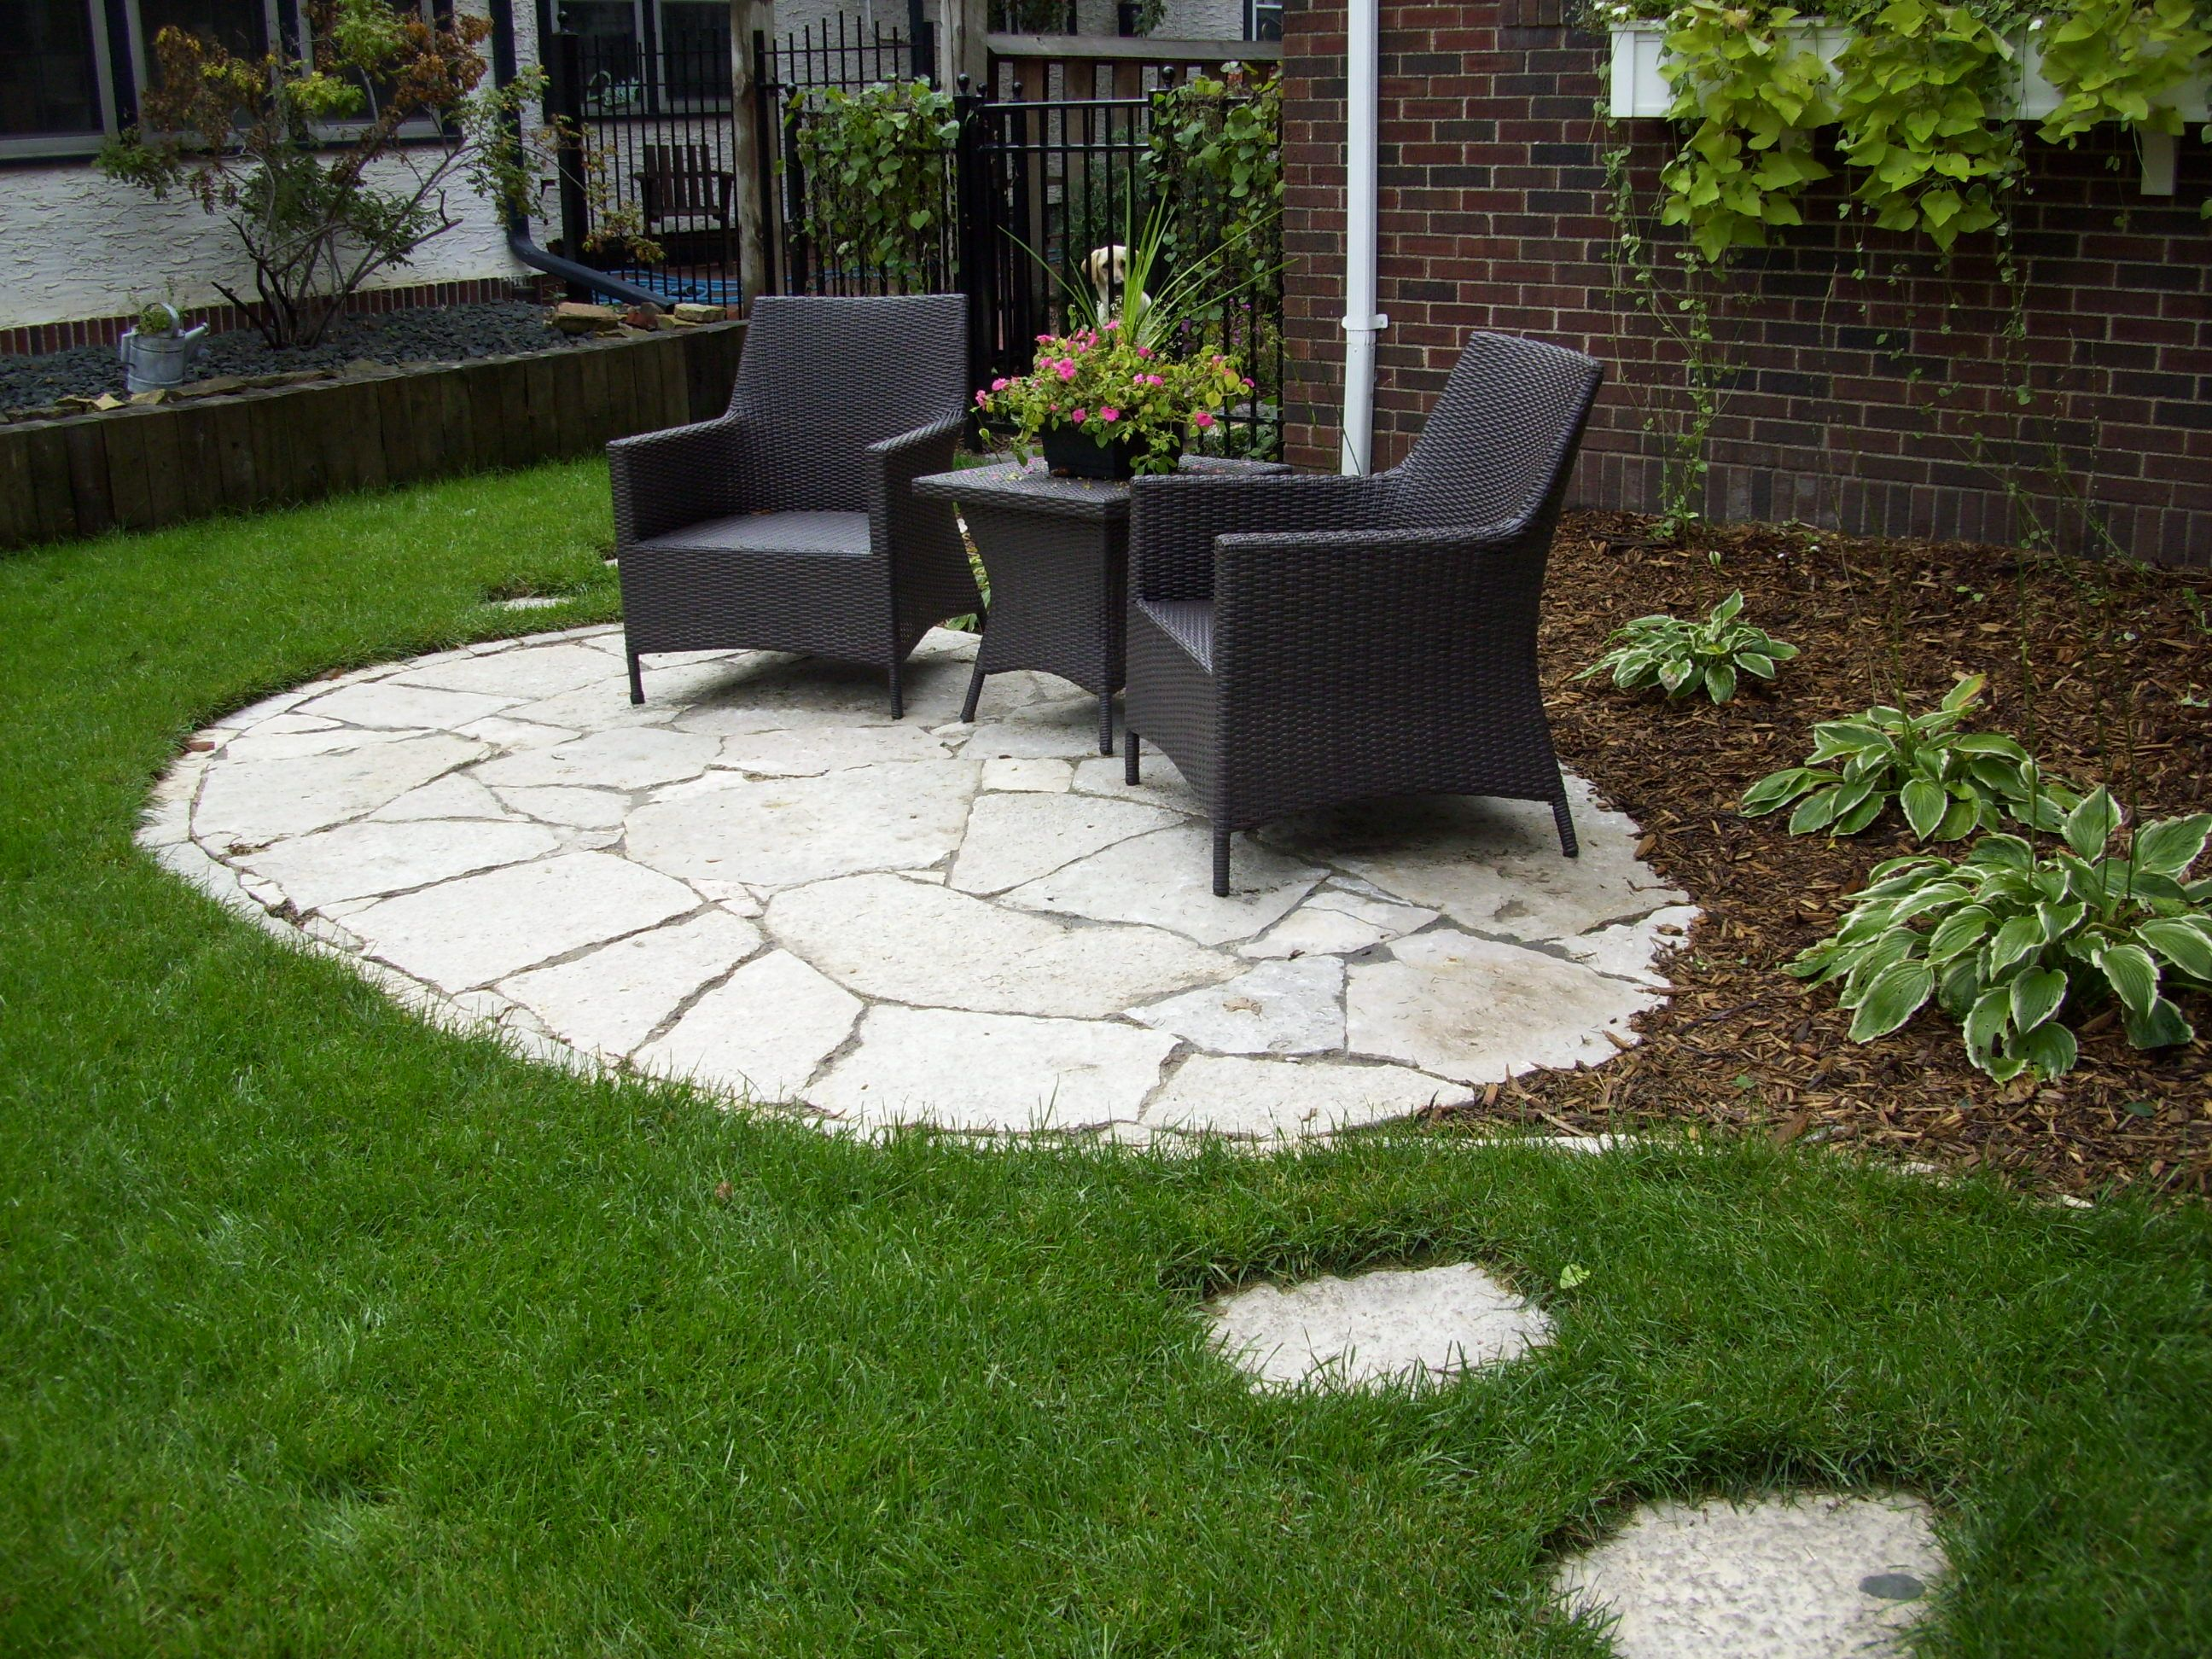 stone front yard patio landscaping gardening ideas